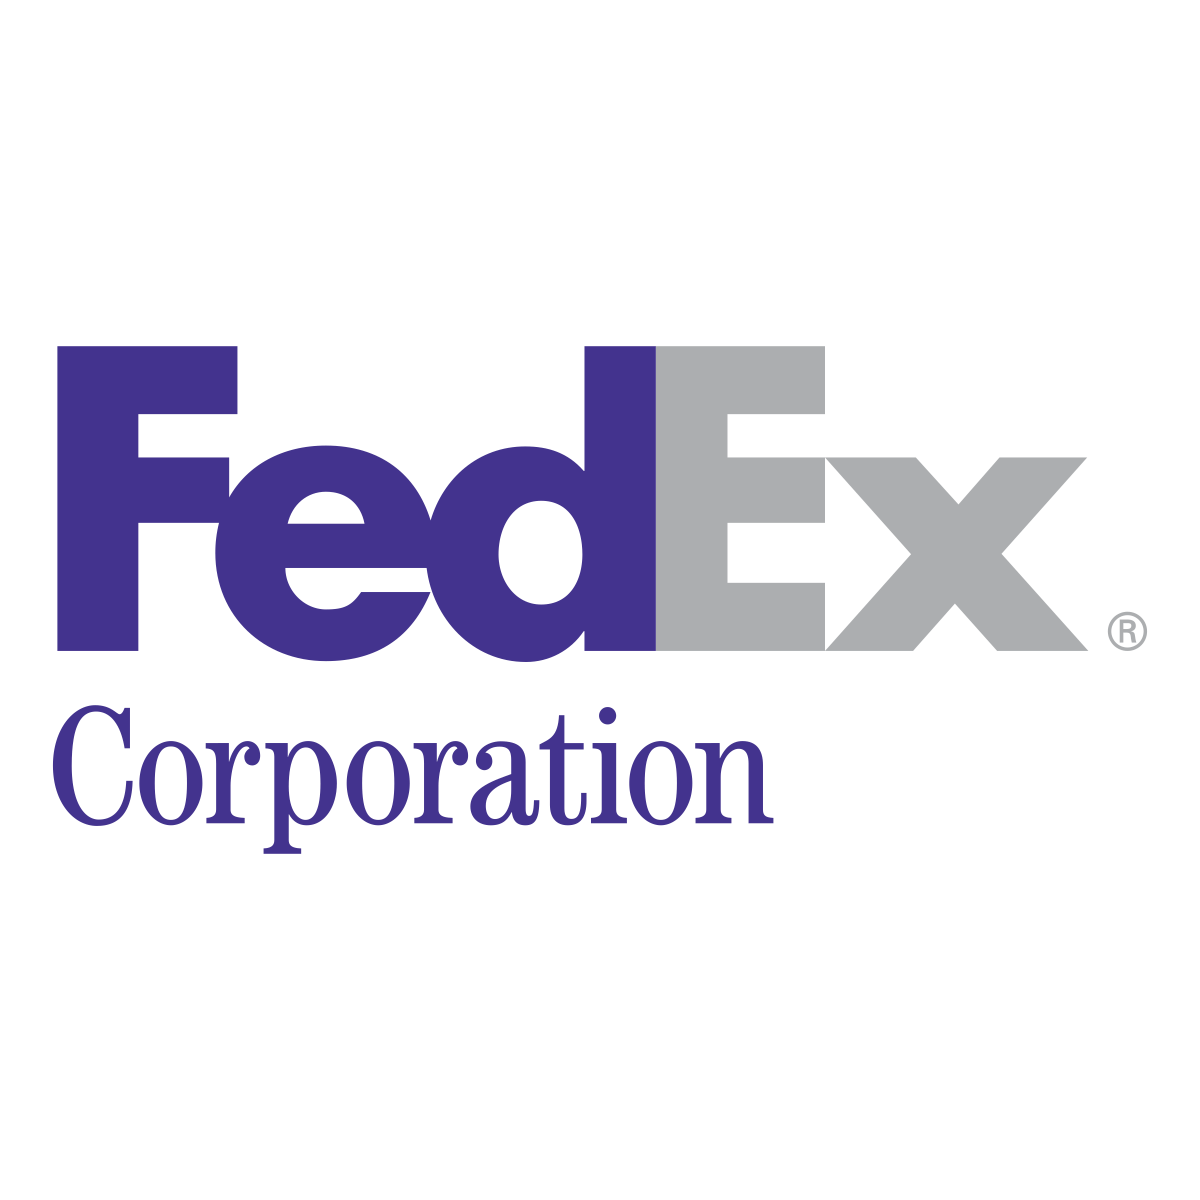 Do portfolio de Bill Gates, 2,1% é FedEx Corporation